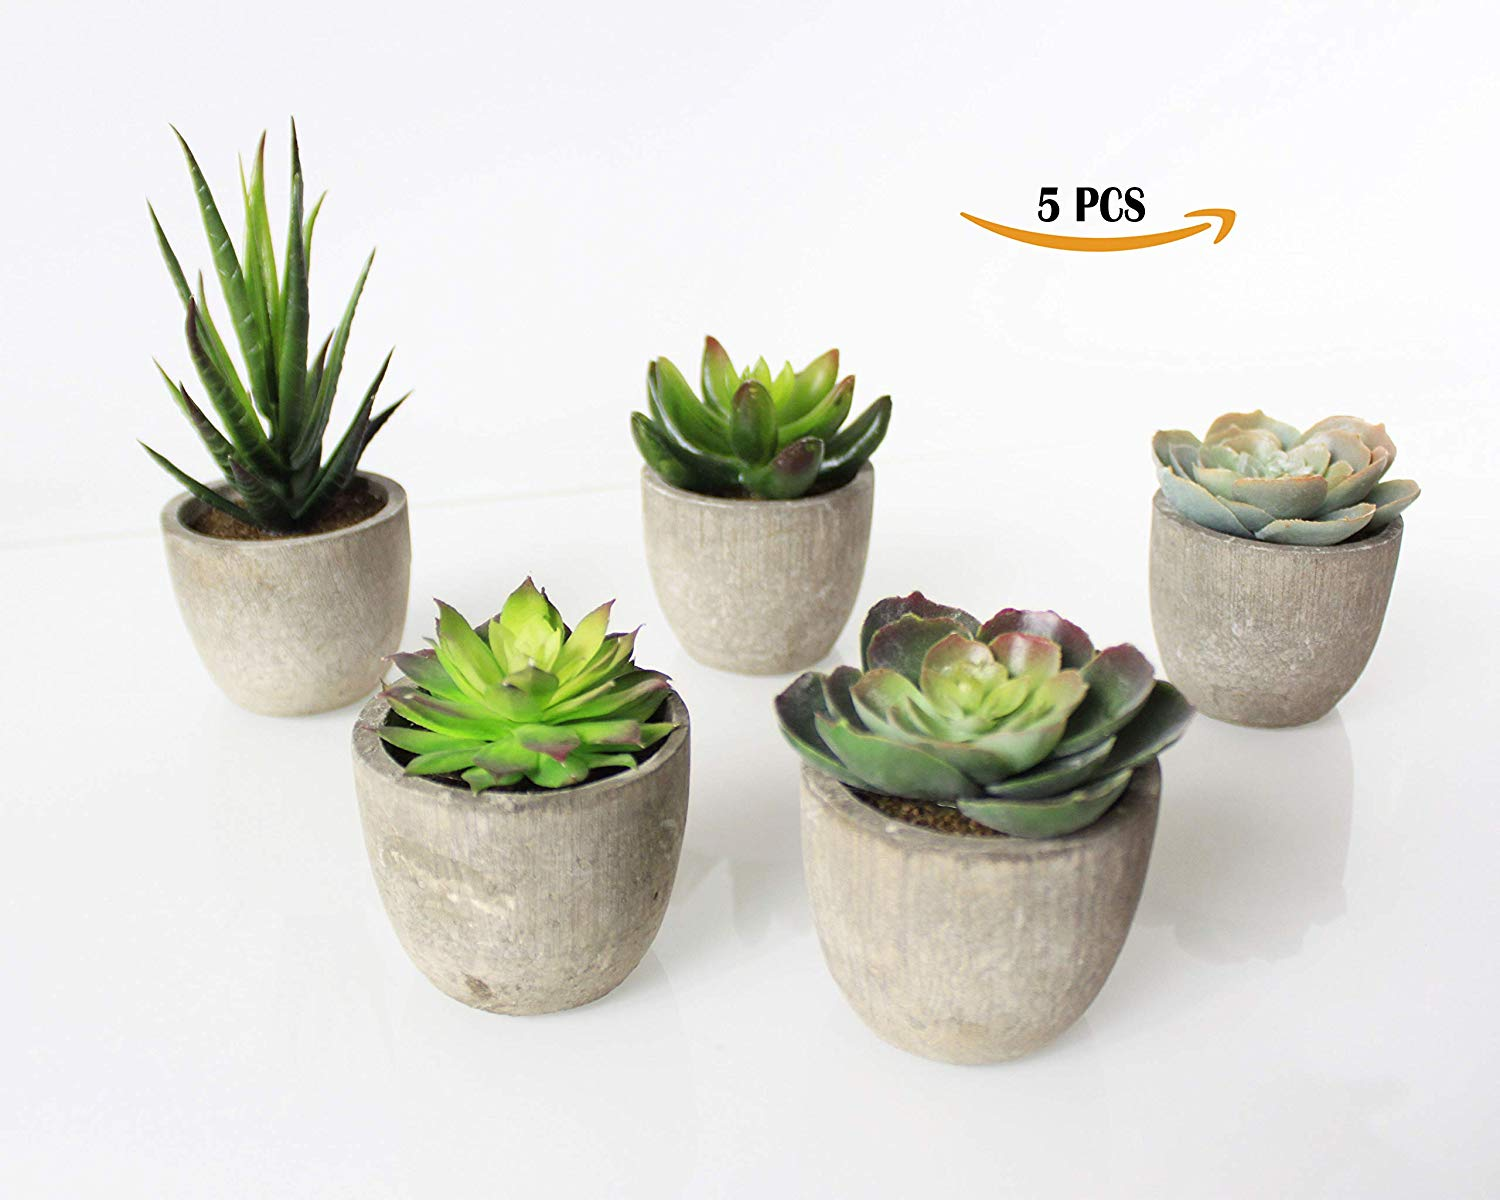 SYNI Designs Decorative Potted Artificial Succulent Plants- Assorted Potted Faux Succulent Plants- Artificial Aloe, Cactus Potted Topiary with Grey Pots (Set of 5)